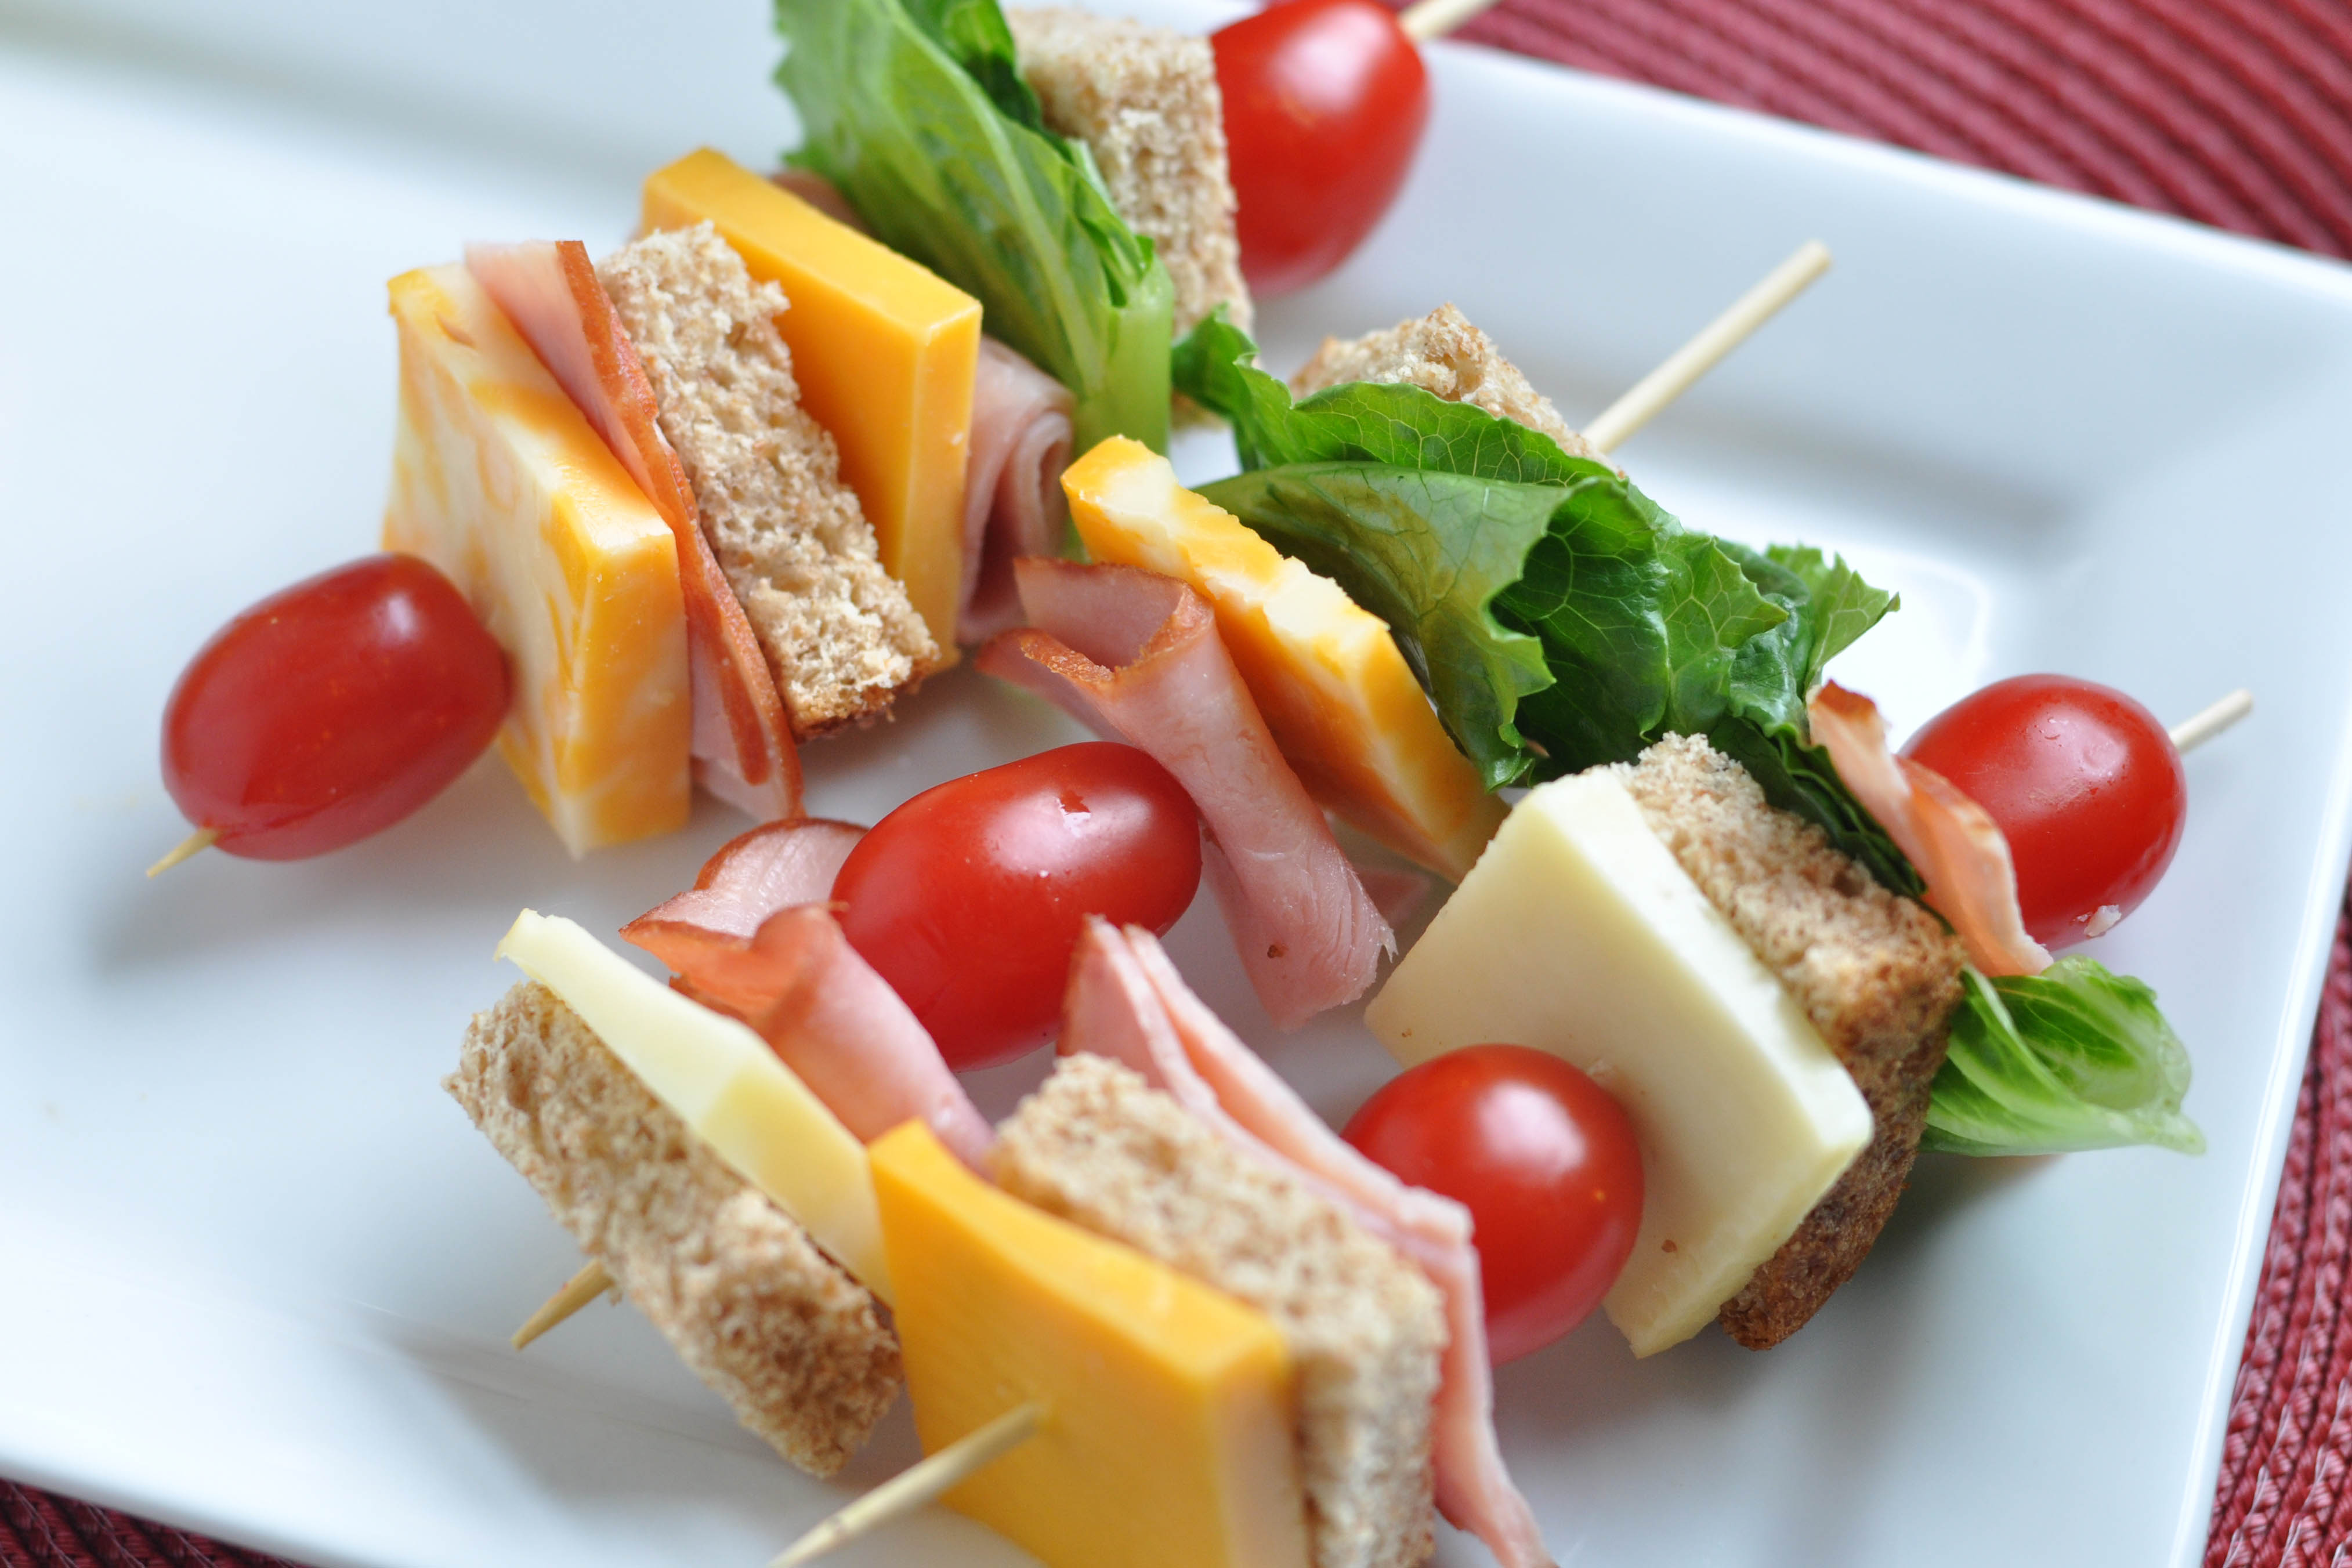 Healthy Kid Lunches- Part 2 - Nutritious Eats